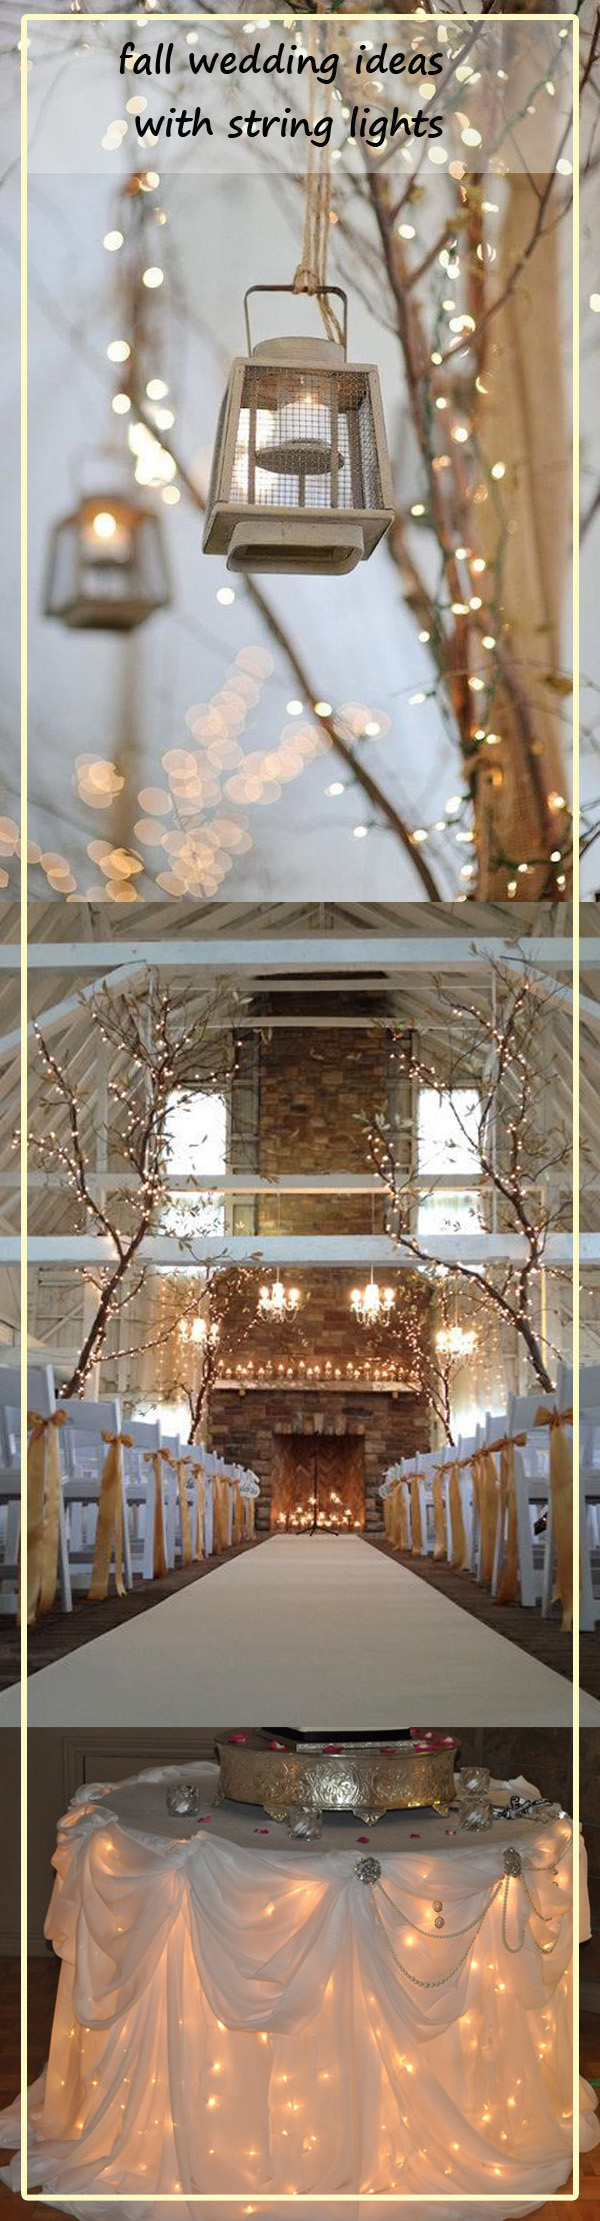 fall country wedding ideas with natural lights